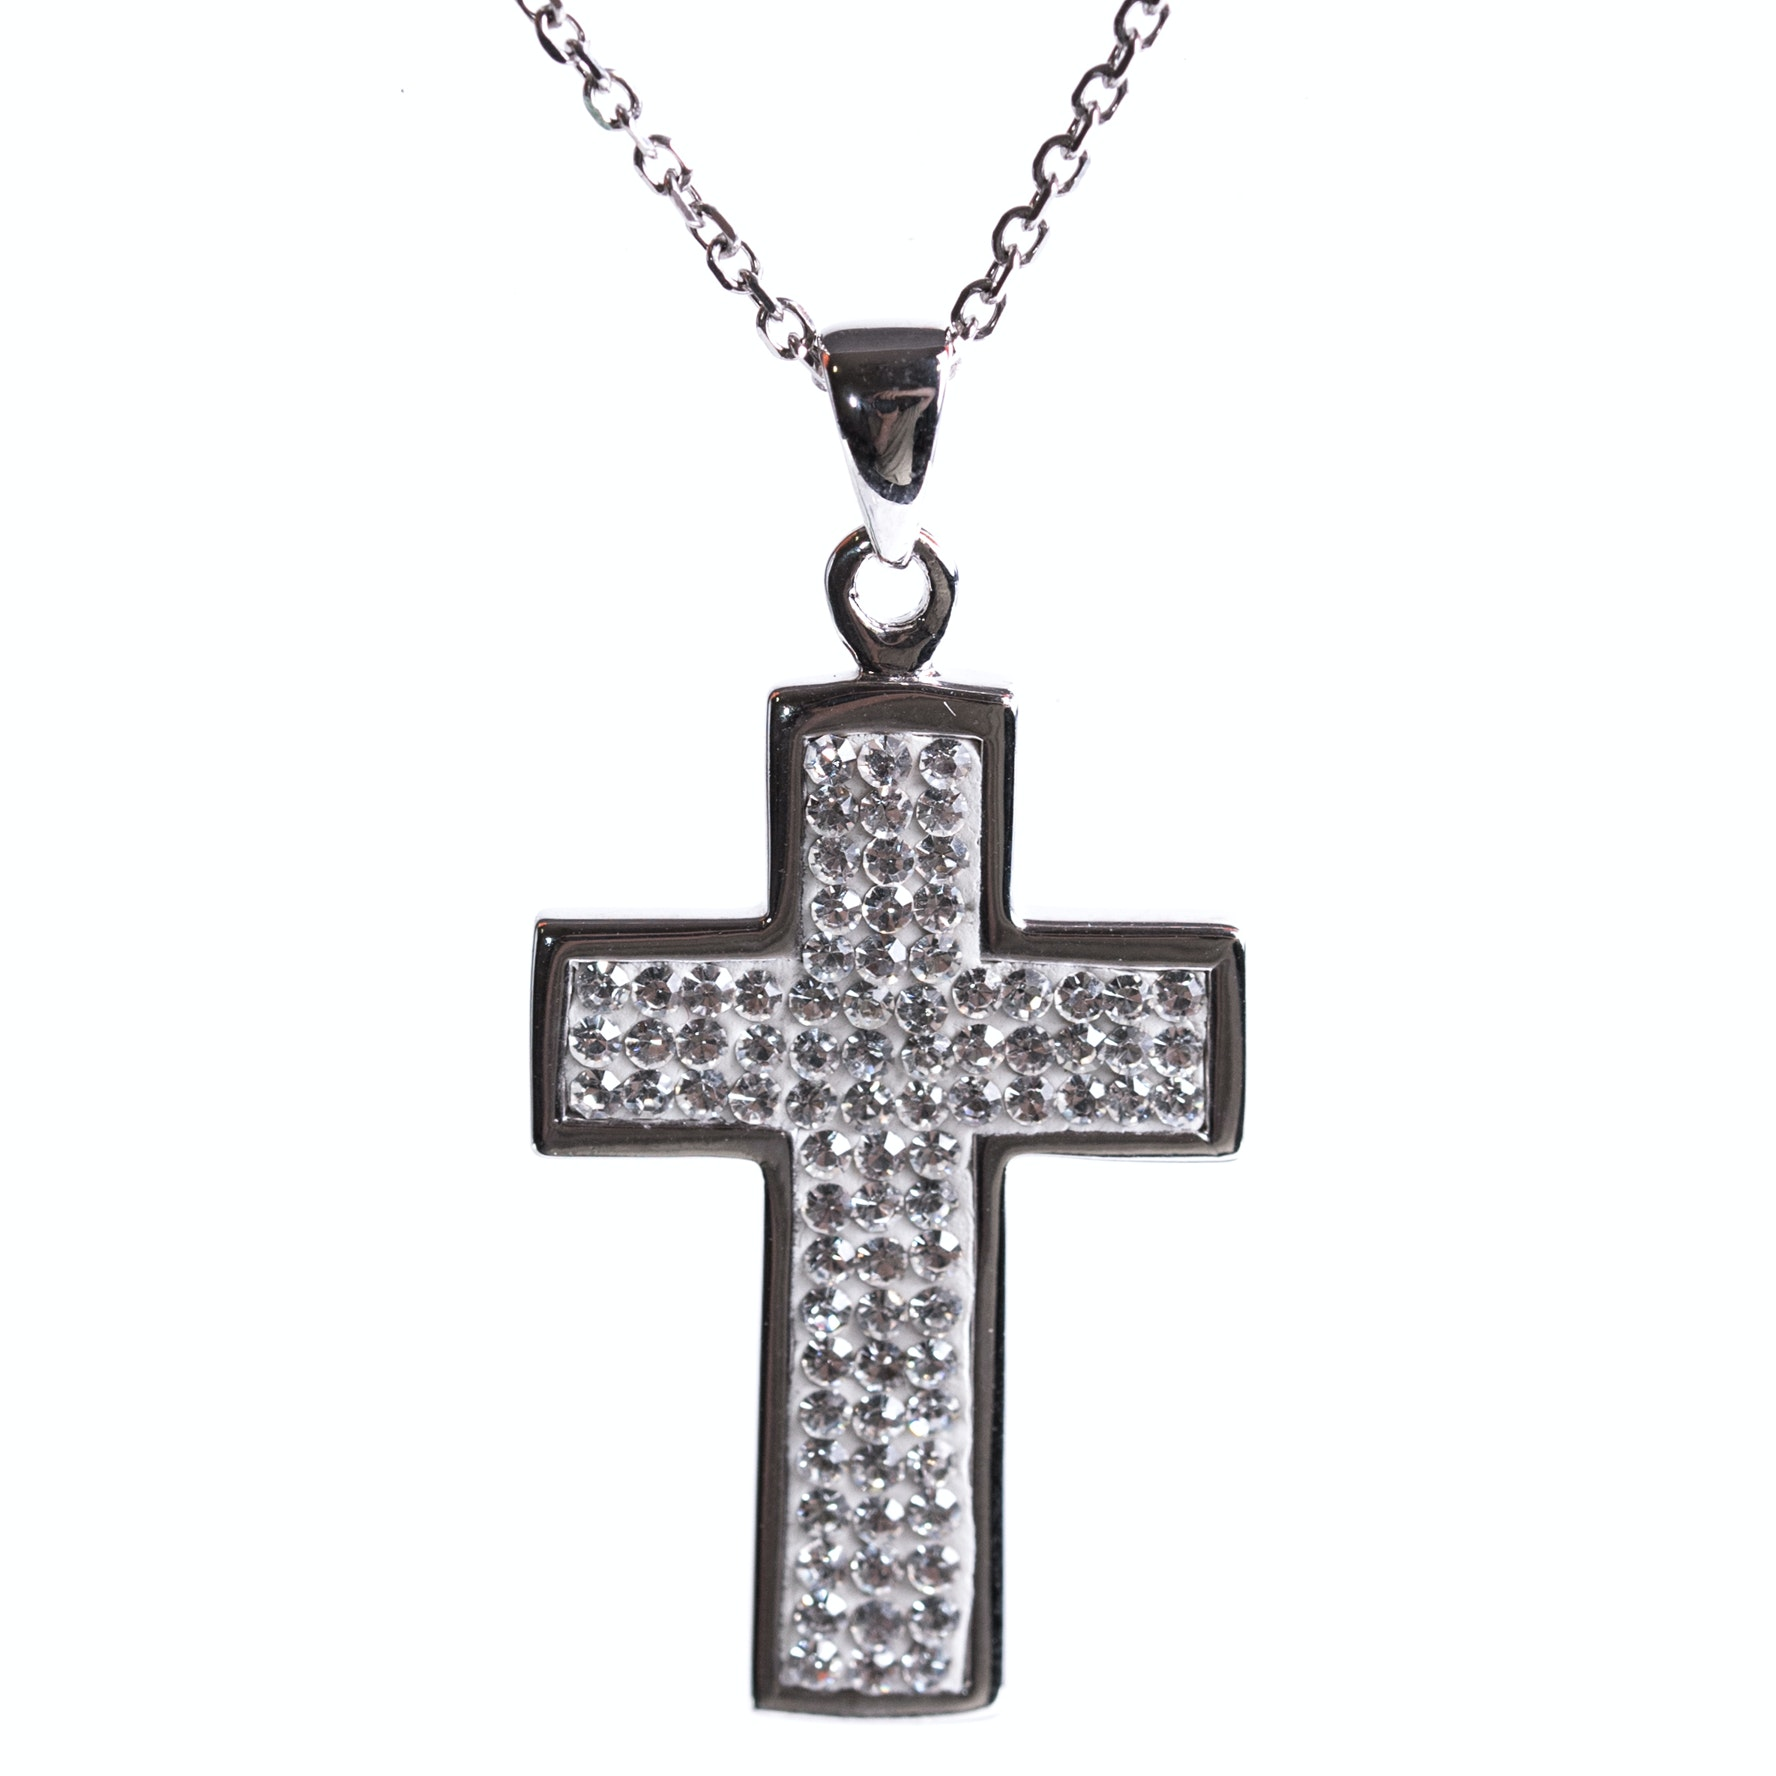 Sterling Silver and Cubic Zirconia Cross Pendant Necklace